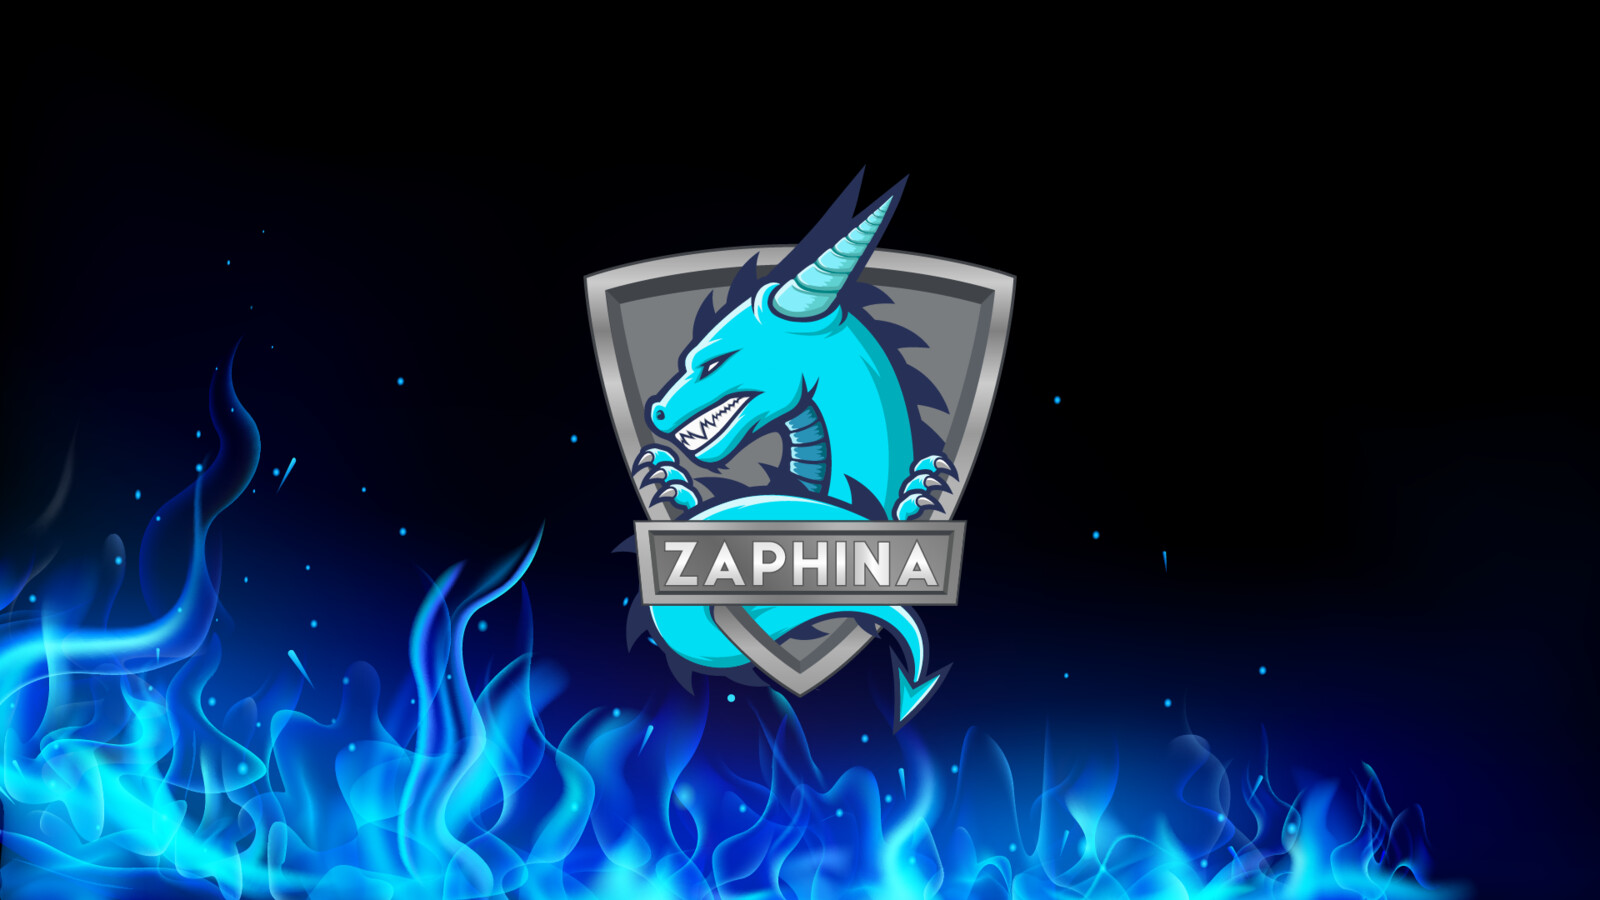 Zaphina (my channel)